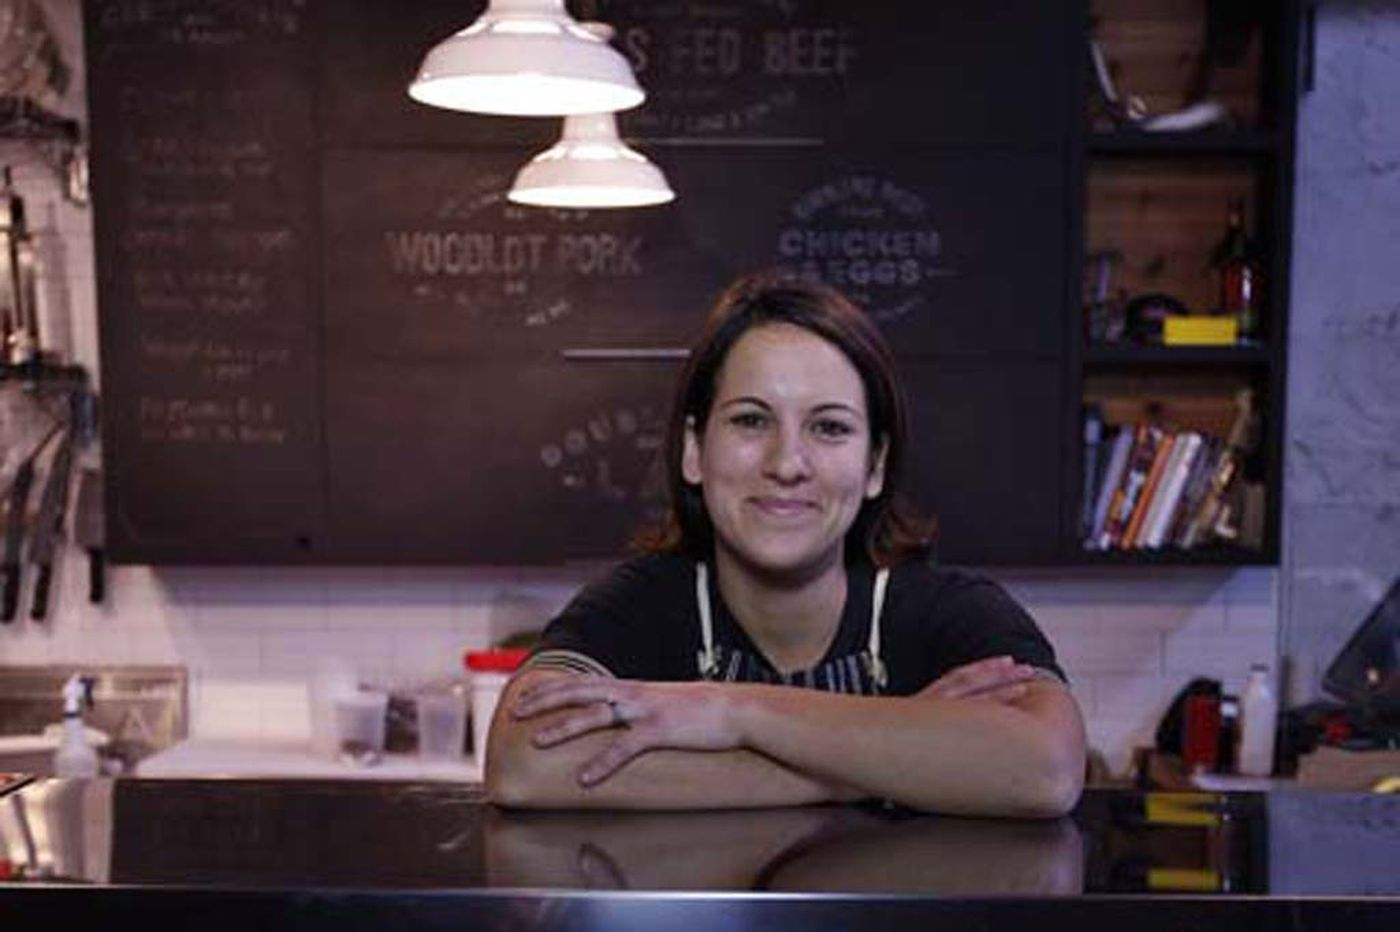 Fishtown butcher slices through gender barrier